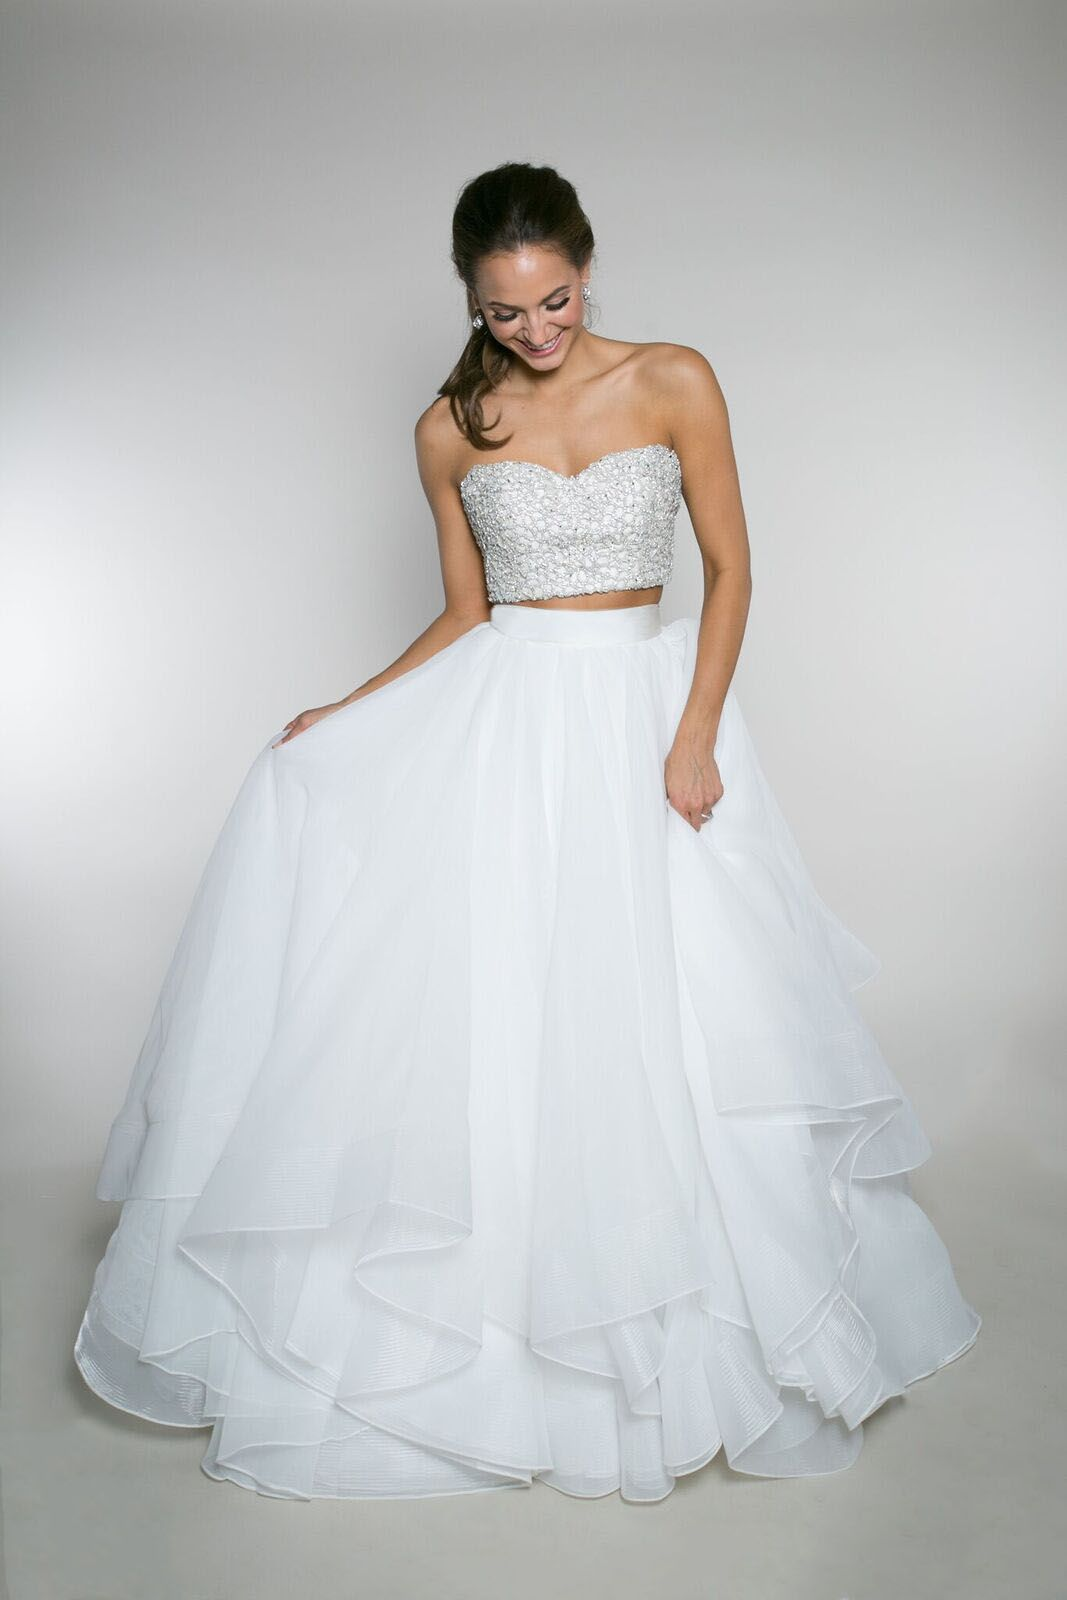 Carolyn Crop Top Beyonce Bodice Keeley Skirt This Crop Top Features A Sweetheart Bodic Crop Top Wedding Dress Wedding Dresses Unique Wedding Dress Styles